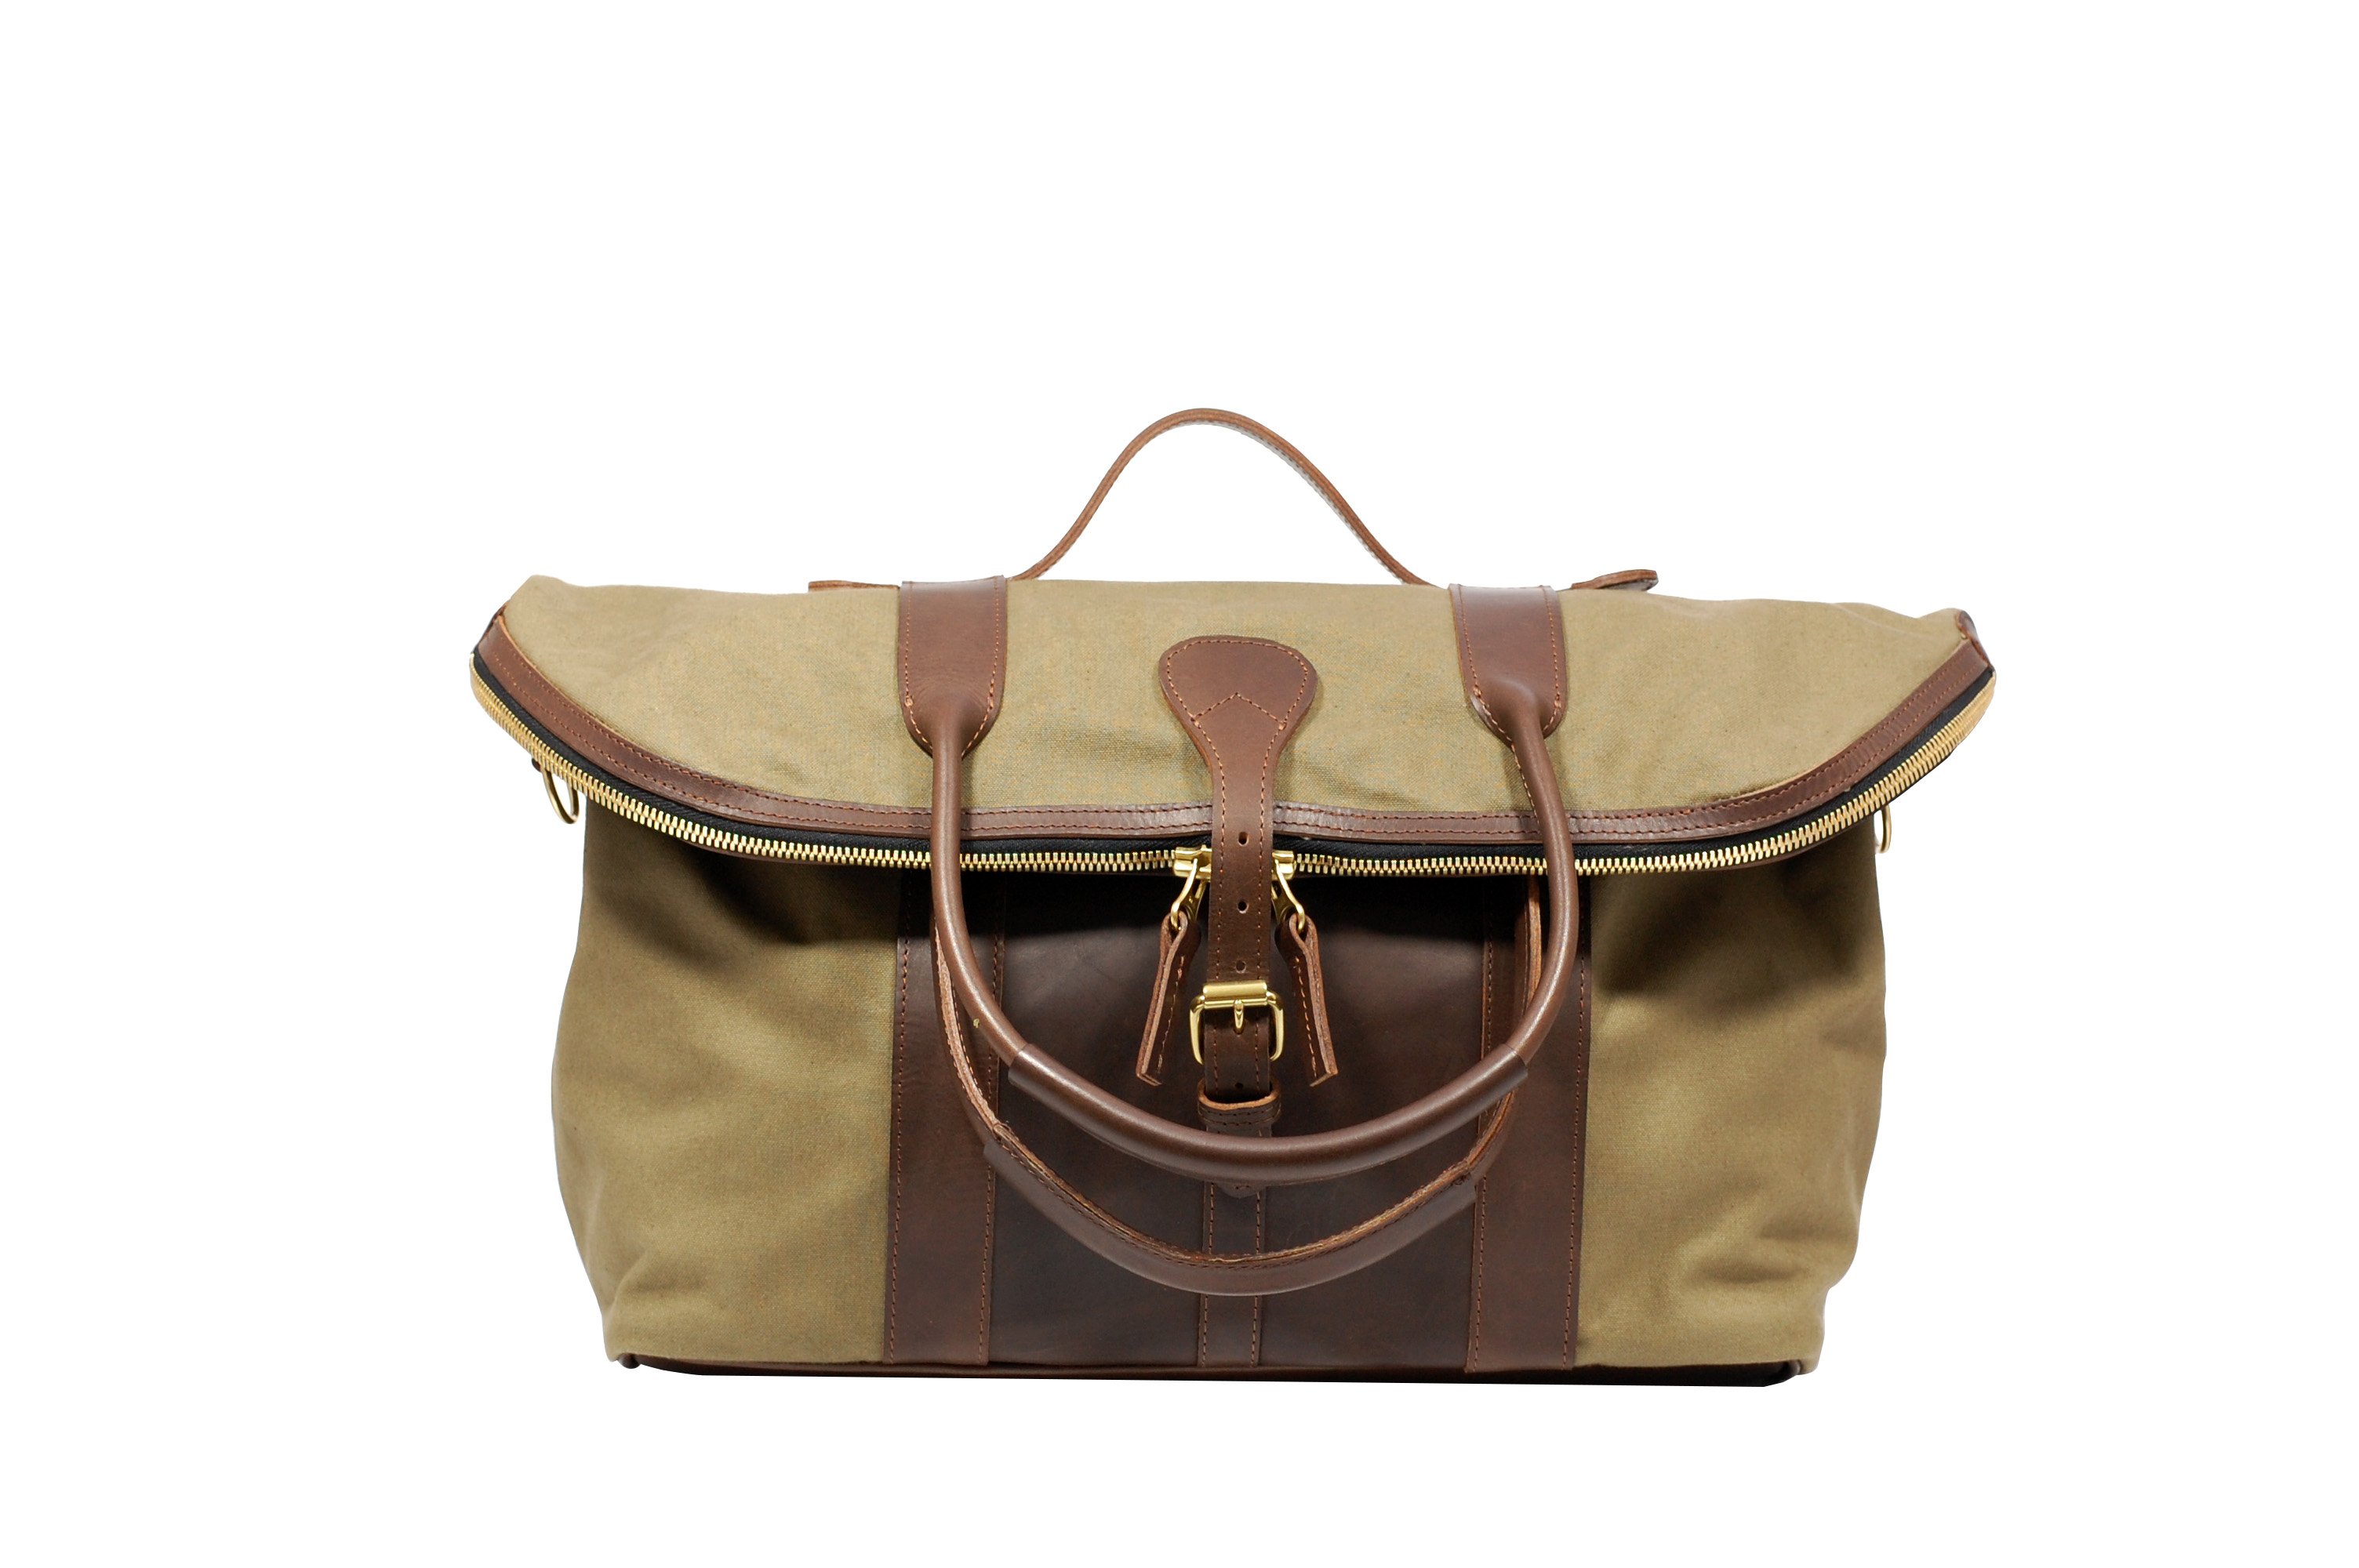 Mahiout doc bag, travel, weekend bag, designer bag, luxury